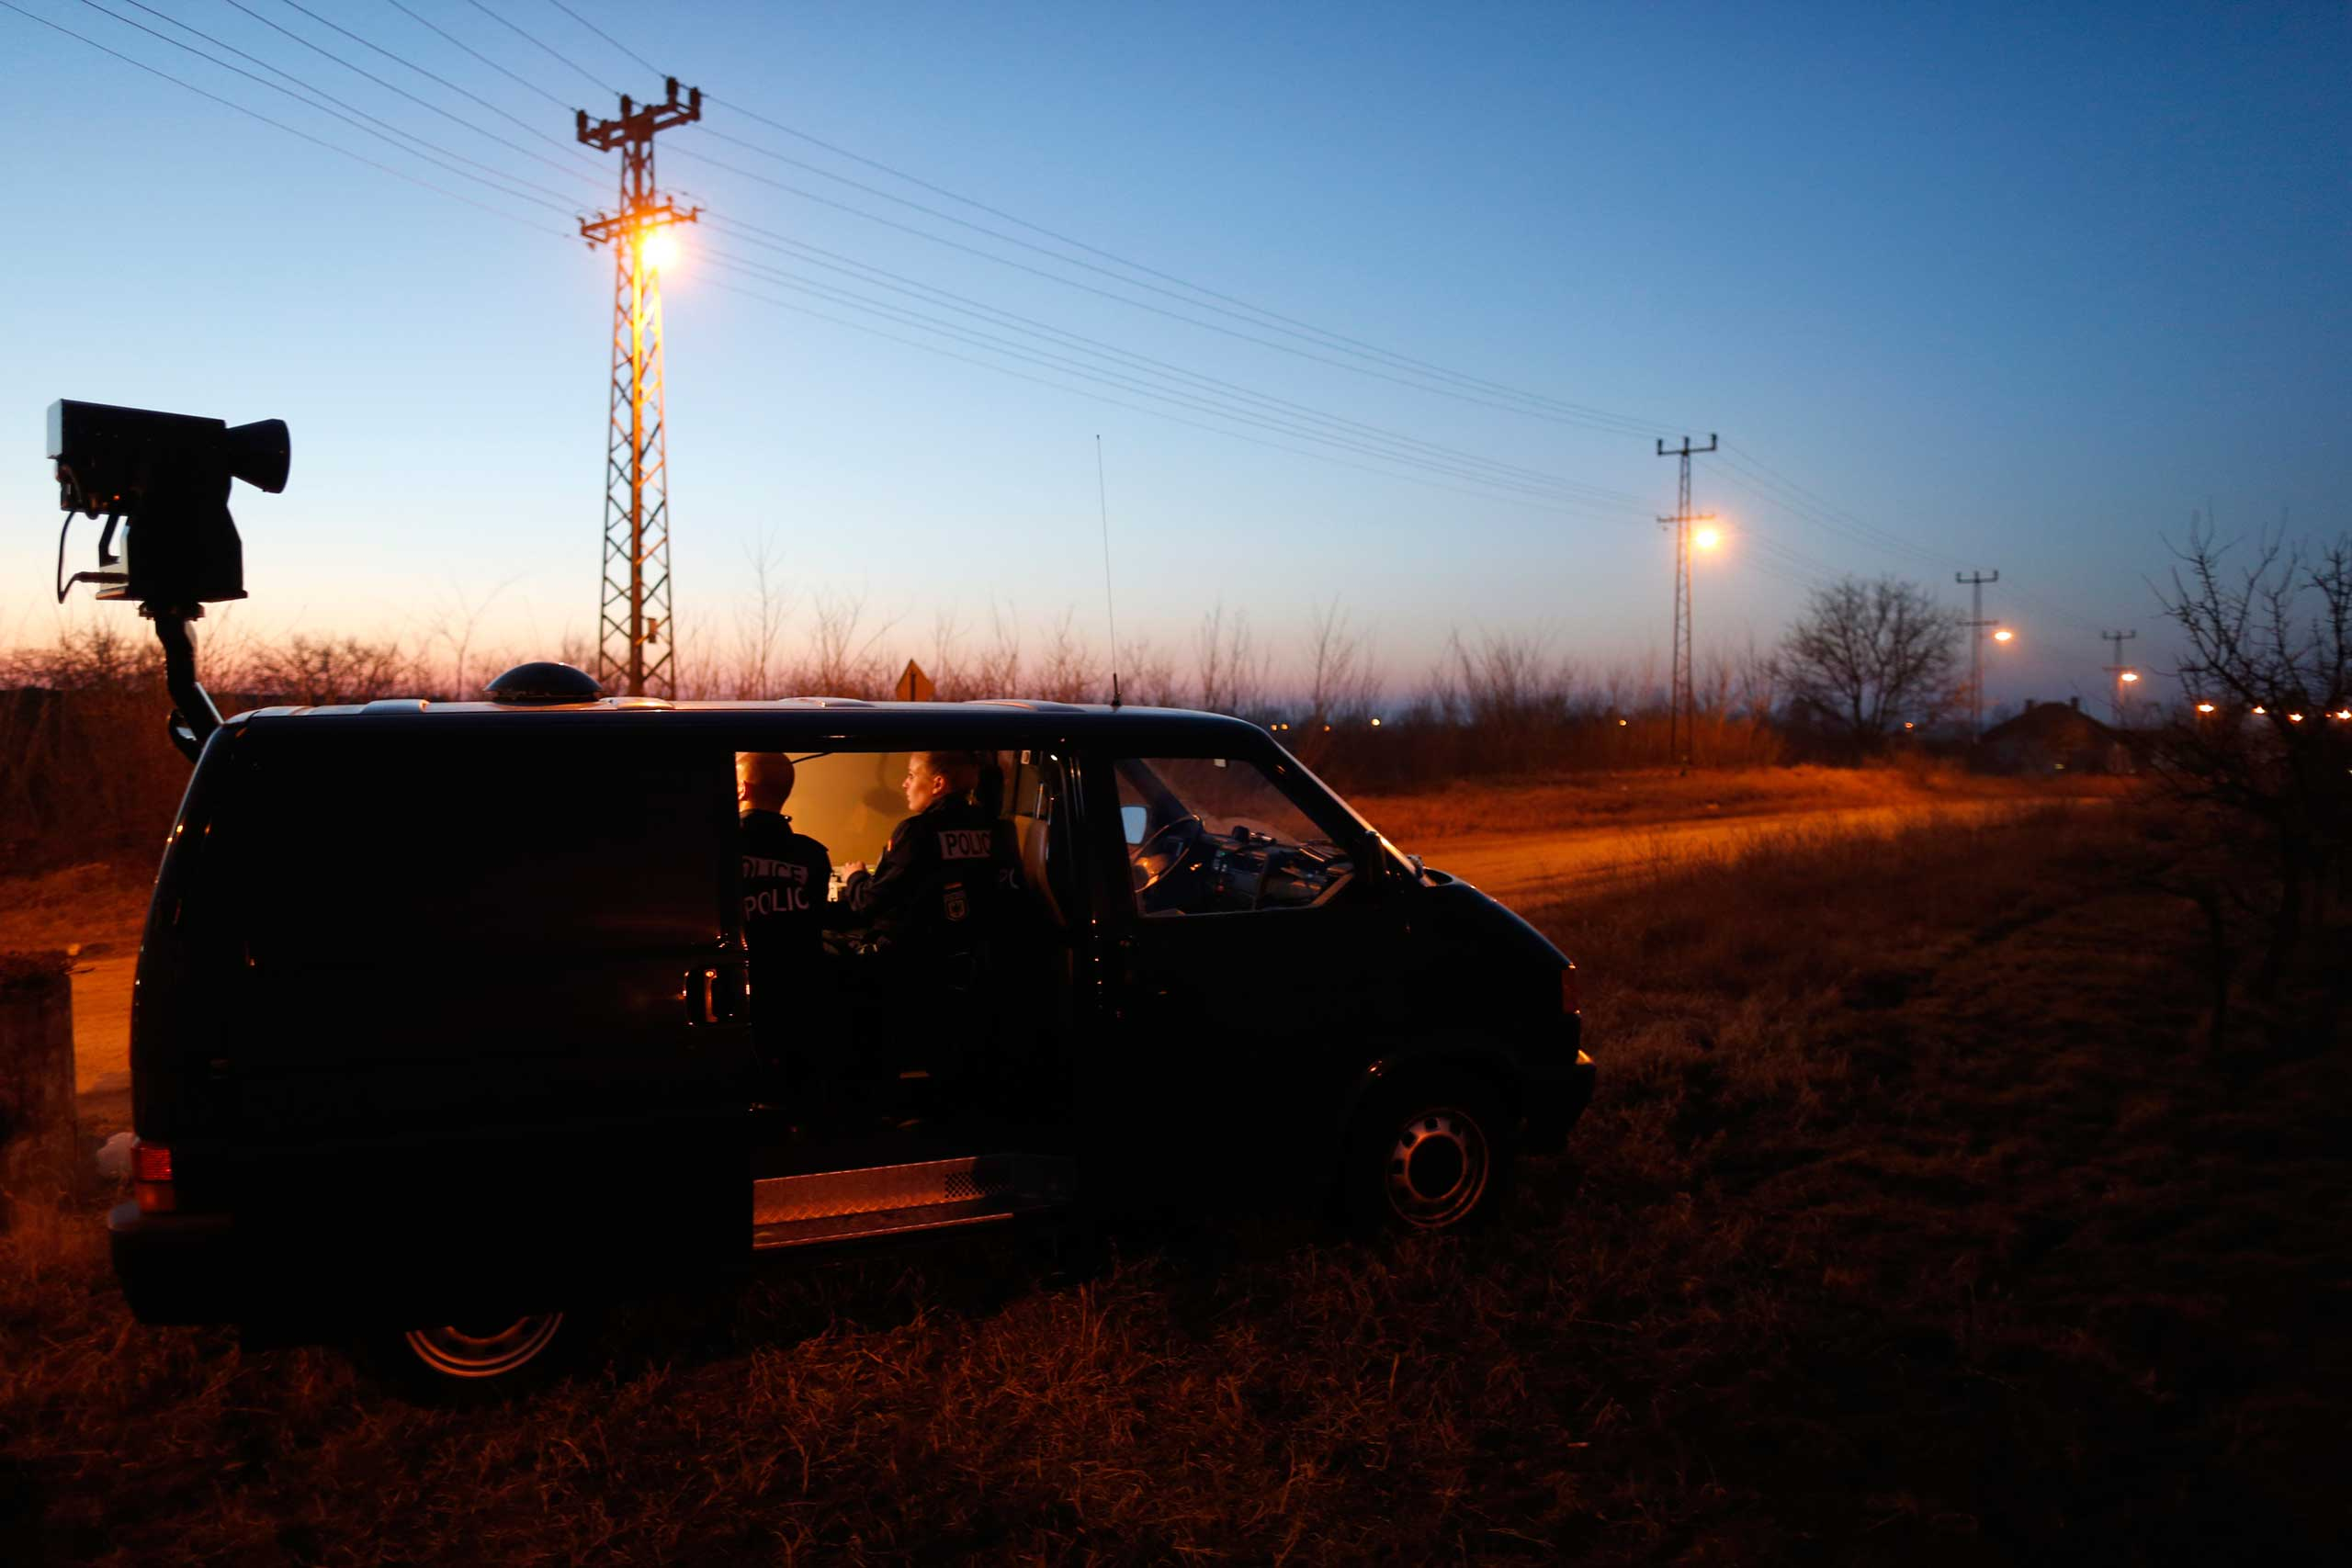 Members of the German border police sit in a van as they check a security camera while monitoring a stretch of the Serbian border with Hungary in the village of Hajdukovo, some 110 miles north of Belgrade, Serbia on Feb. 13, 2015.